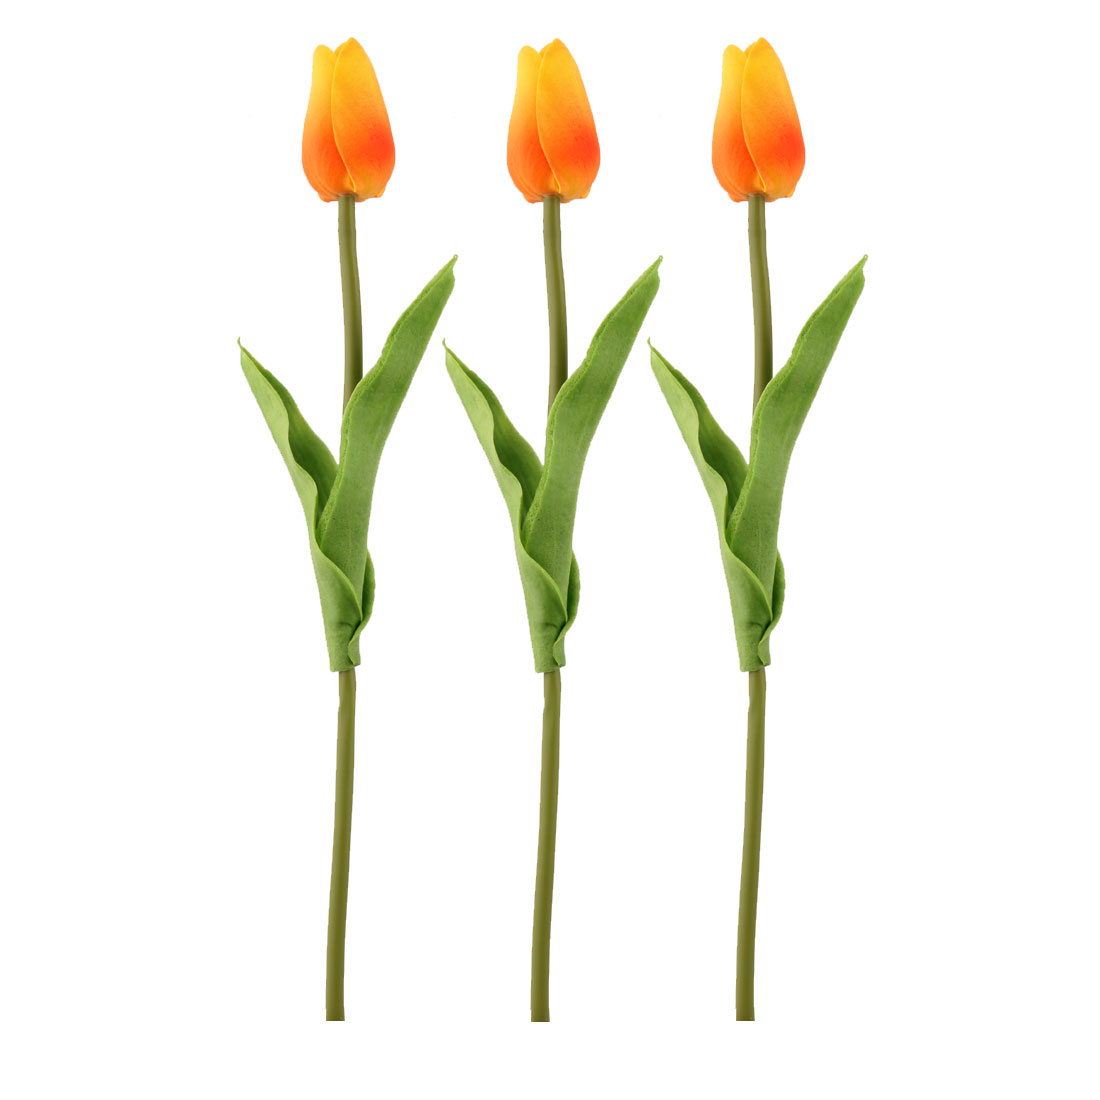 Wedding Tulip Design Handhold Artificial Flower Bouquet Yellow Orange 3pcs